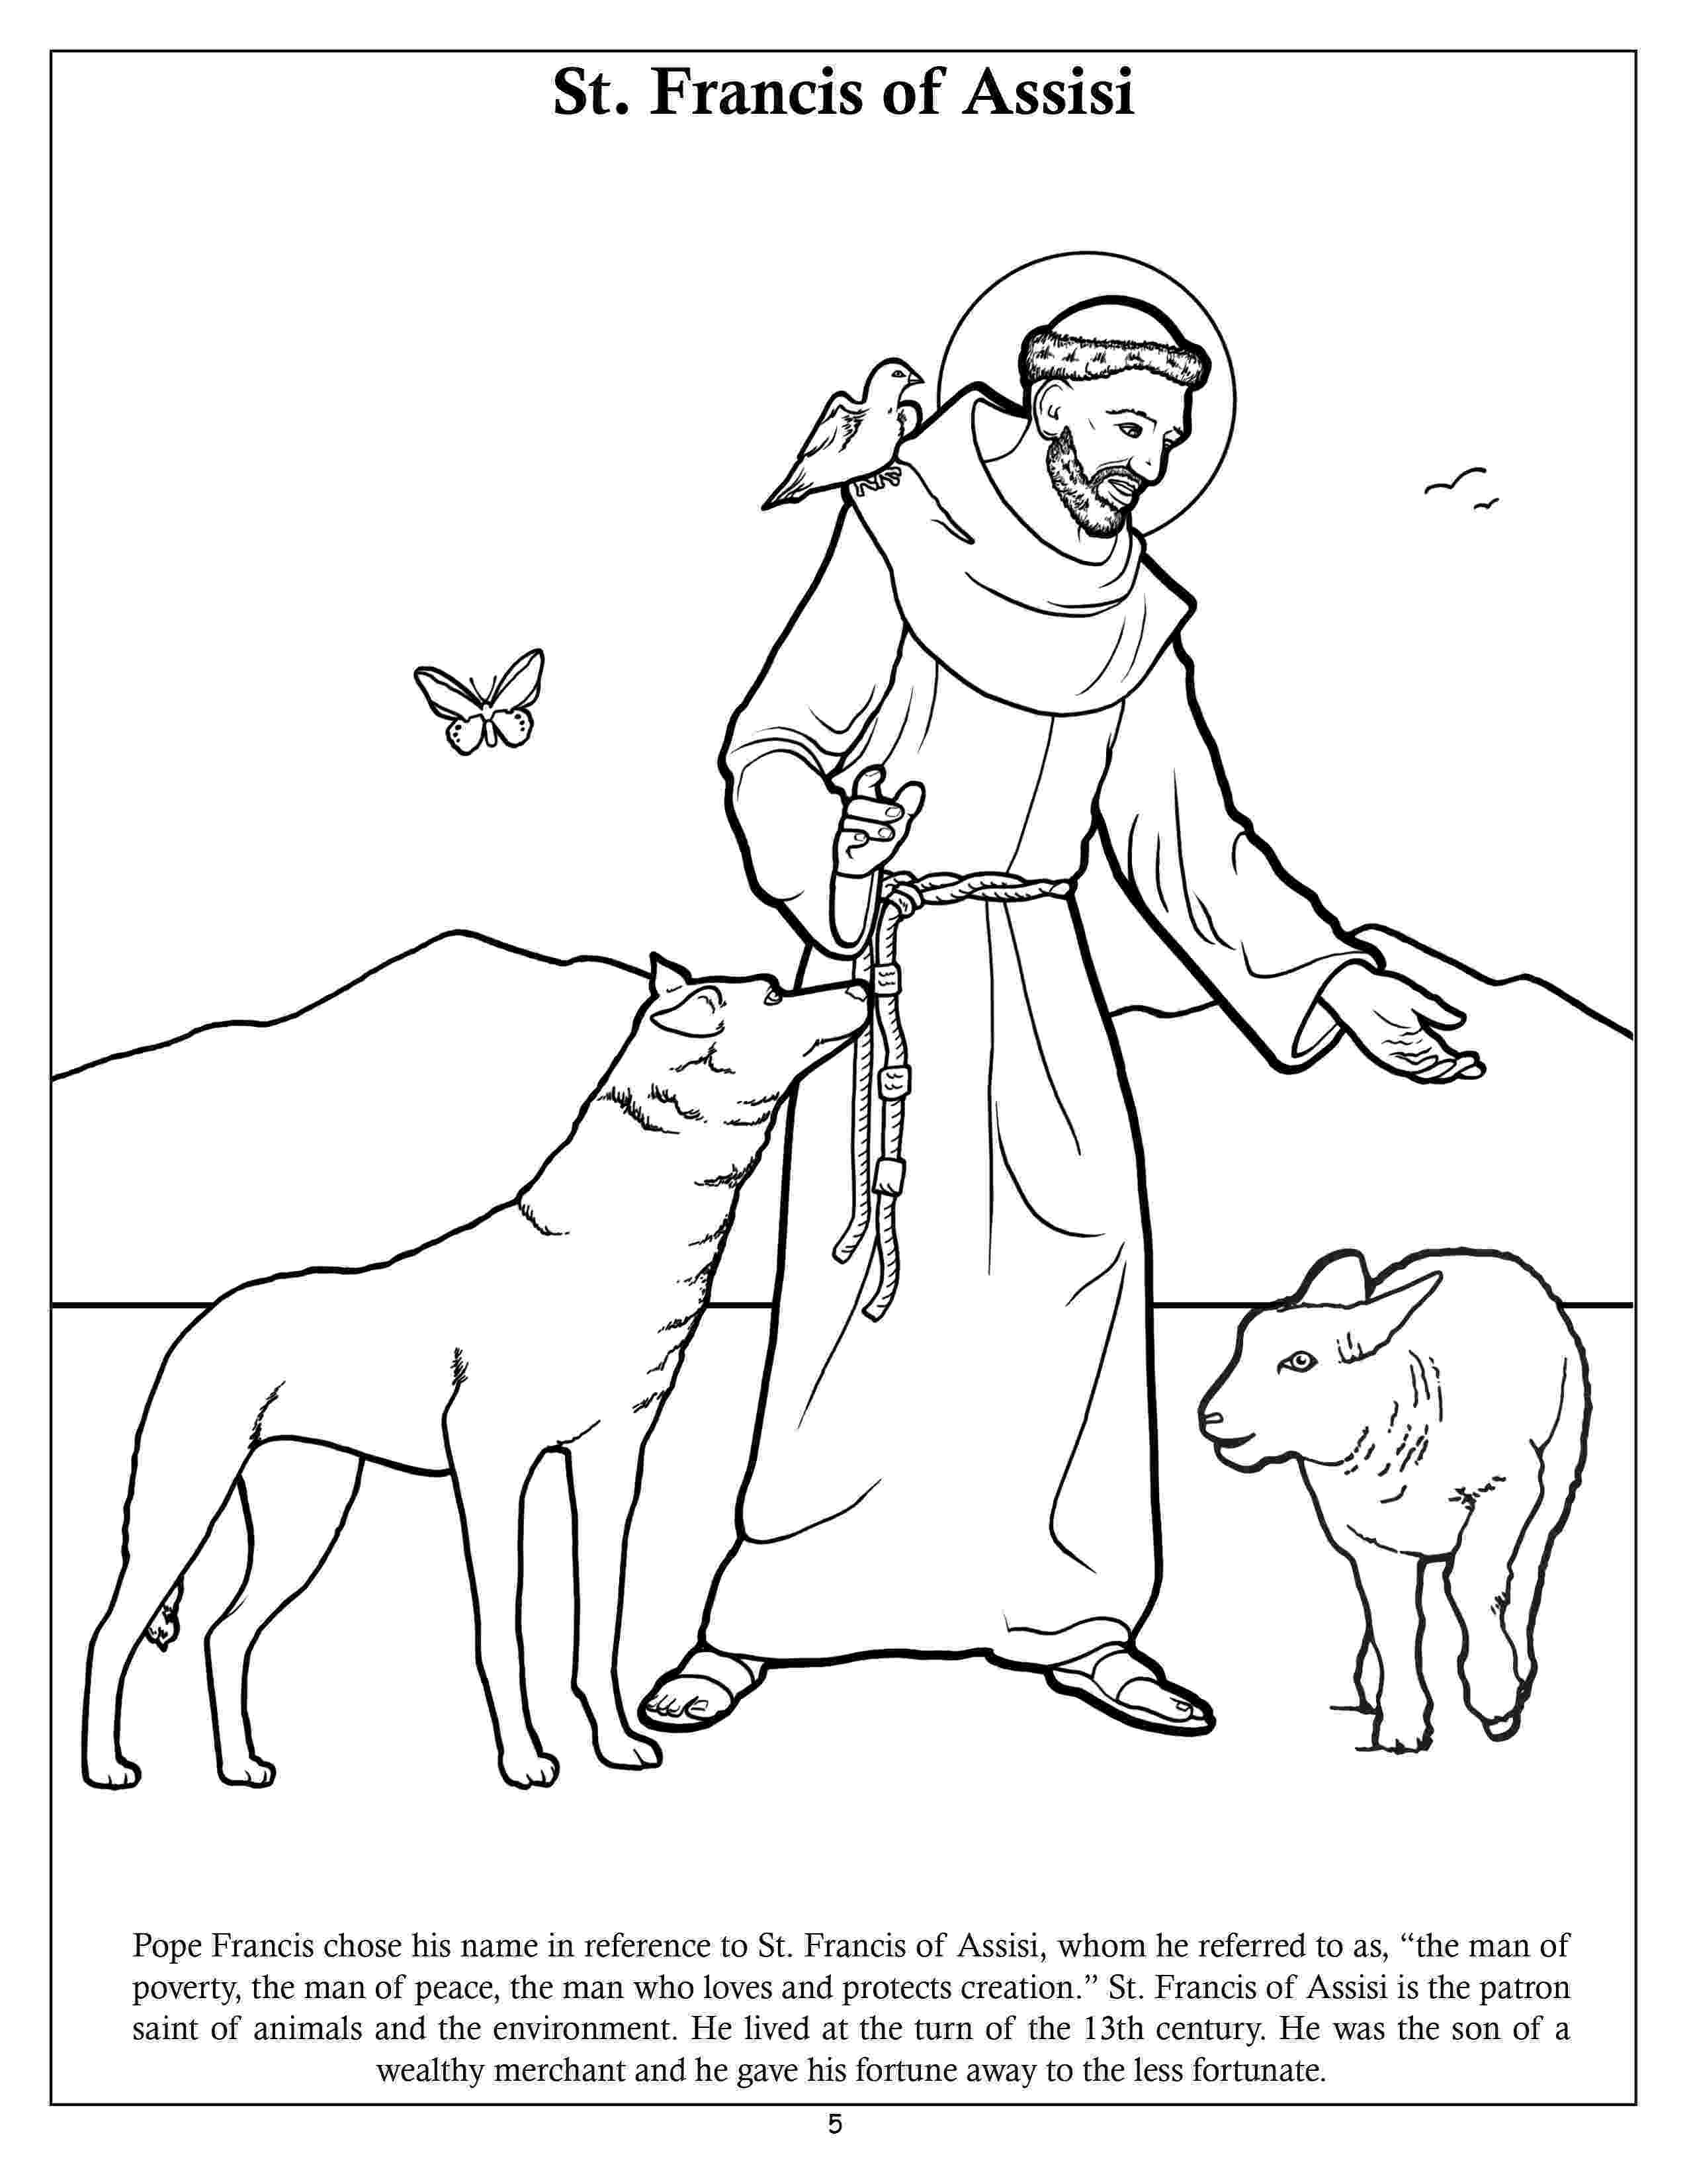 st francis coloring page st francis of assisi coloring pages for catholic kids page francis coloring st